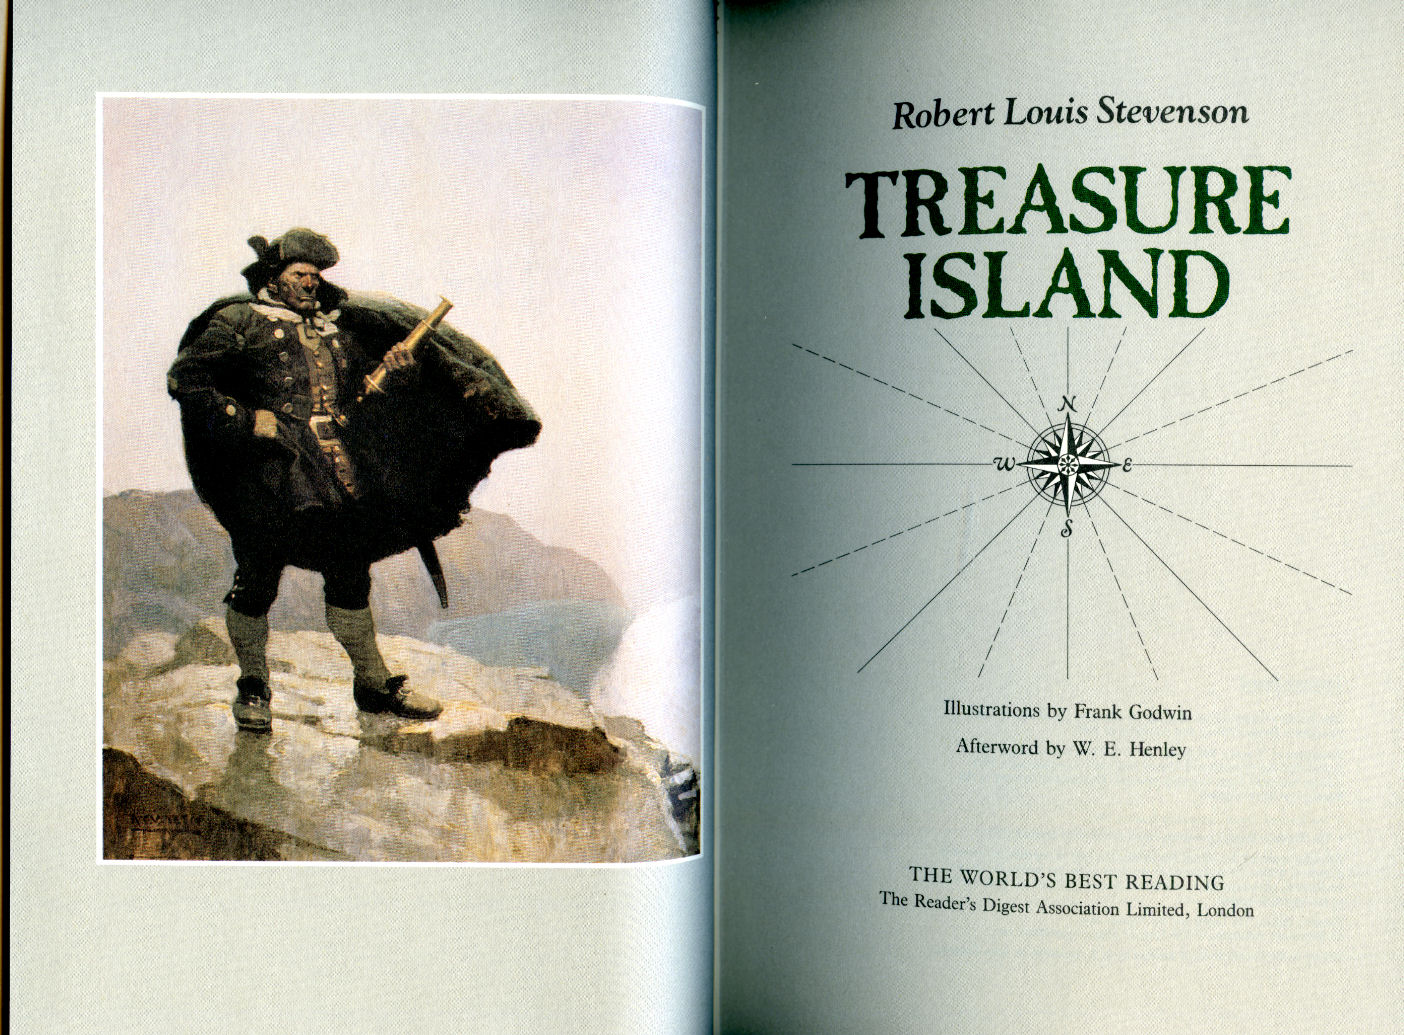 STEVENSON, ROBERT LOUIS [ROBERT LOUIS STEVENSON (13 NOVEMBER 1850 - 3 DECEMBER 1894)]. ILLUSTRATED BY FRANK GODWIN [AFTERWORD BY W. E. HENLEY]. - Treasure Island (The World's Best Reading Series)